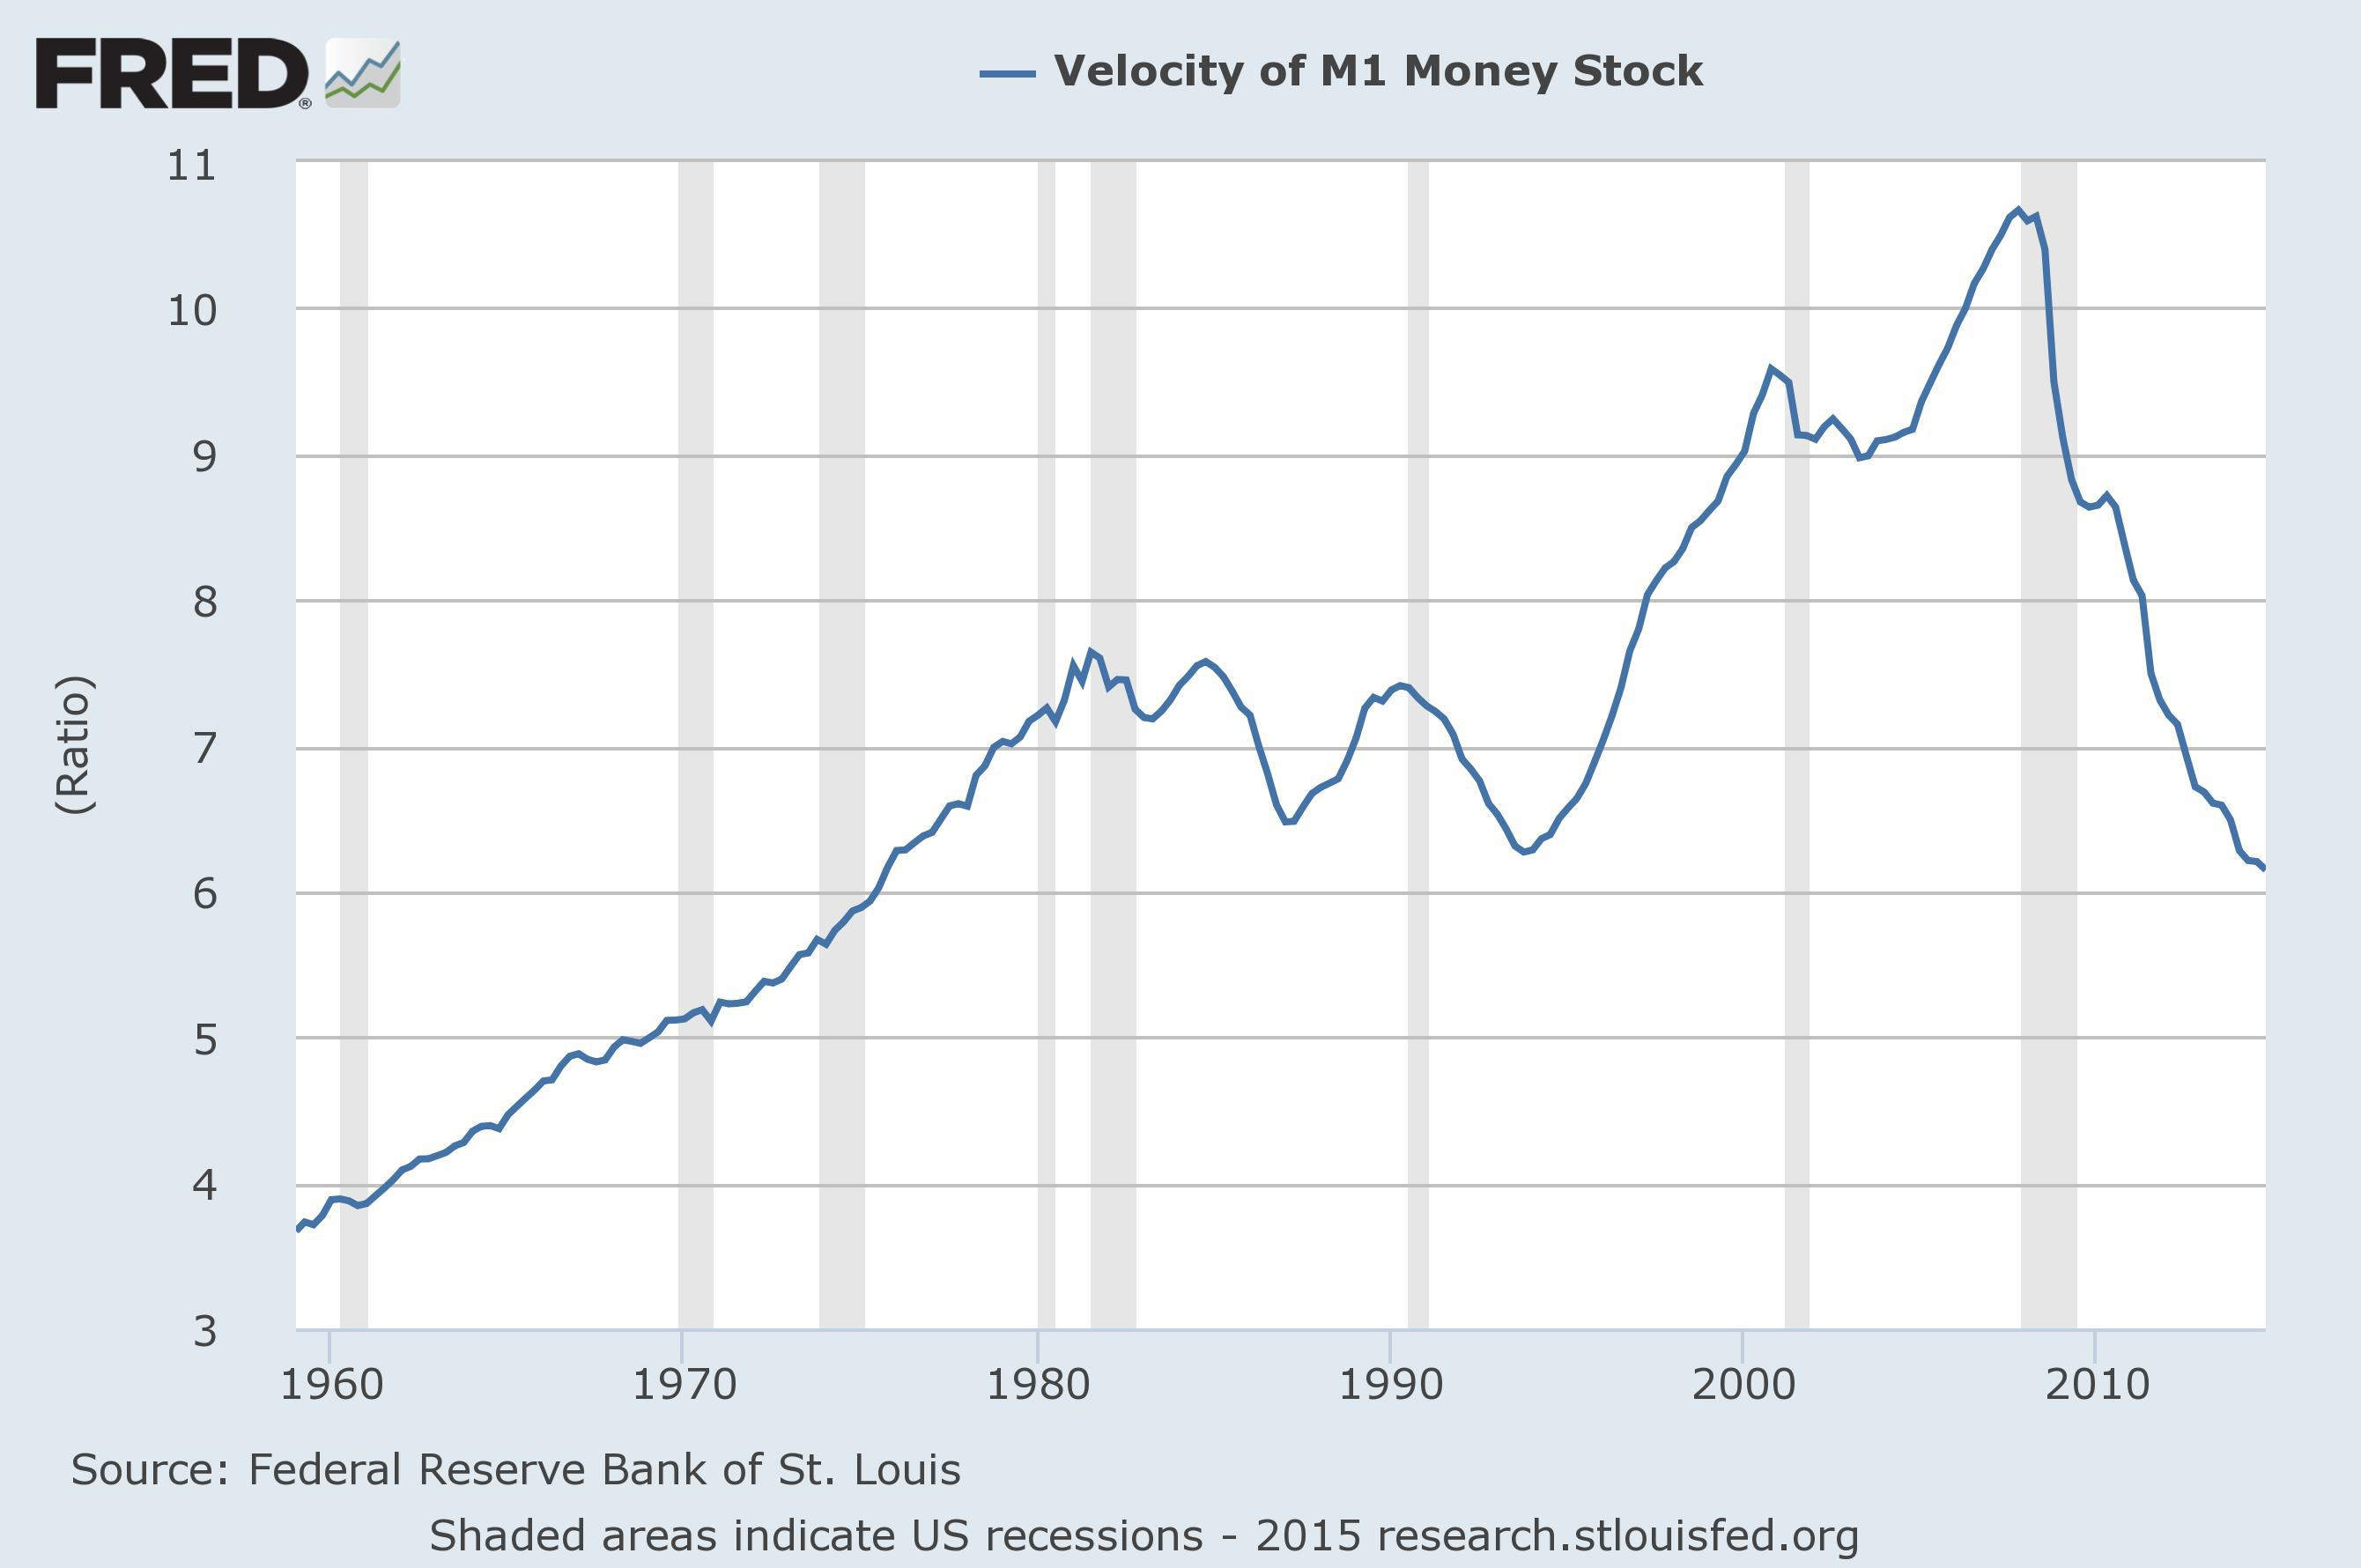 Why money velocity continues to decline seeking alpha the second chart below gives the velocity of m2 money stock and it is clear that the velocity of m2 money stock is at its lowest level since the data was nvjuhfo Choice Image